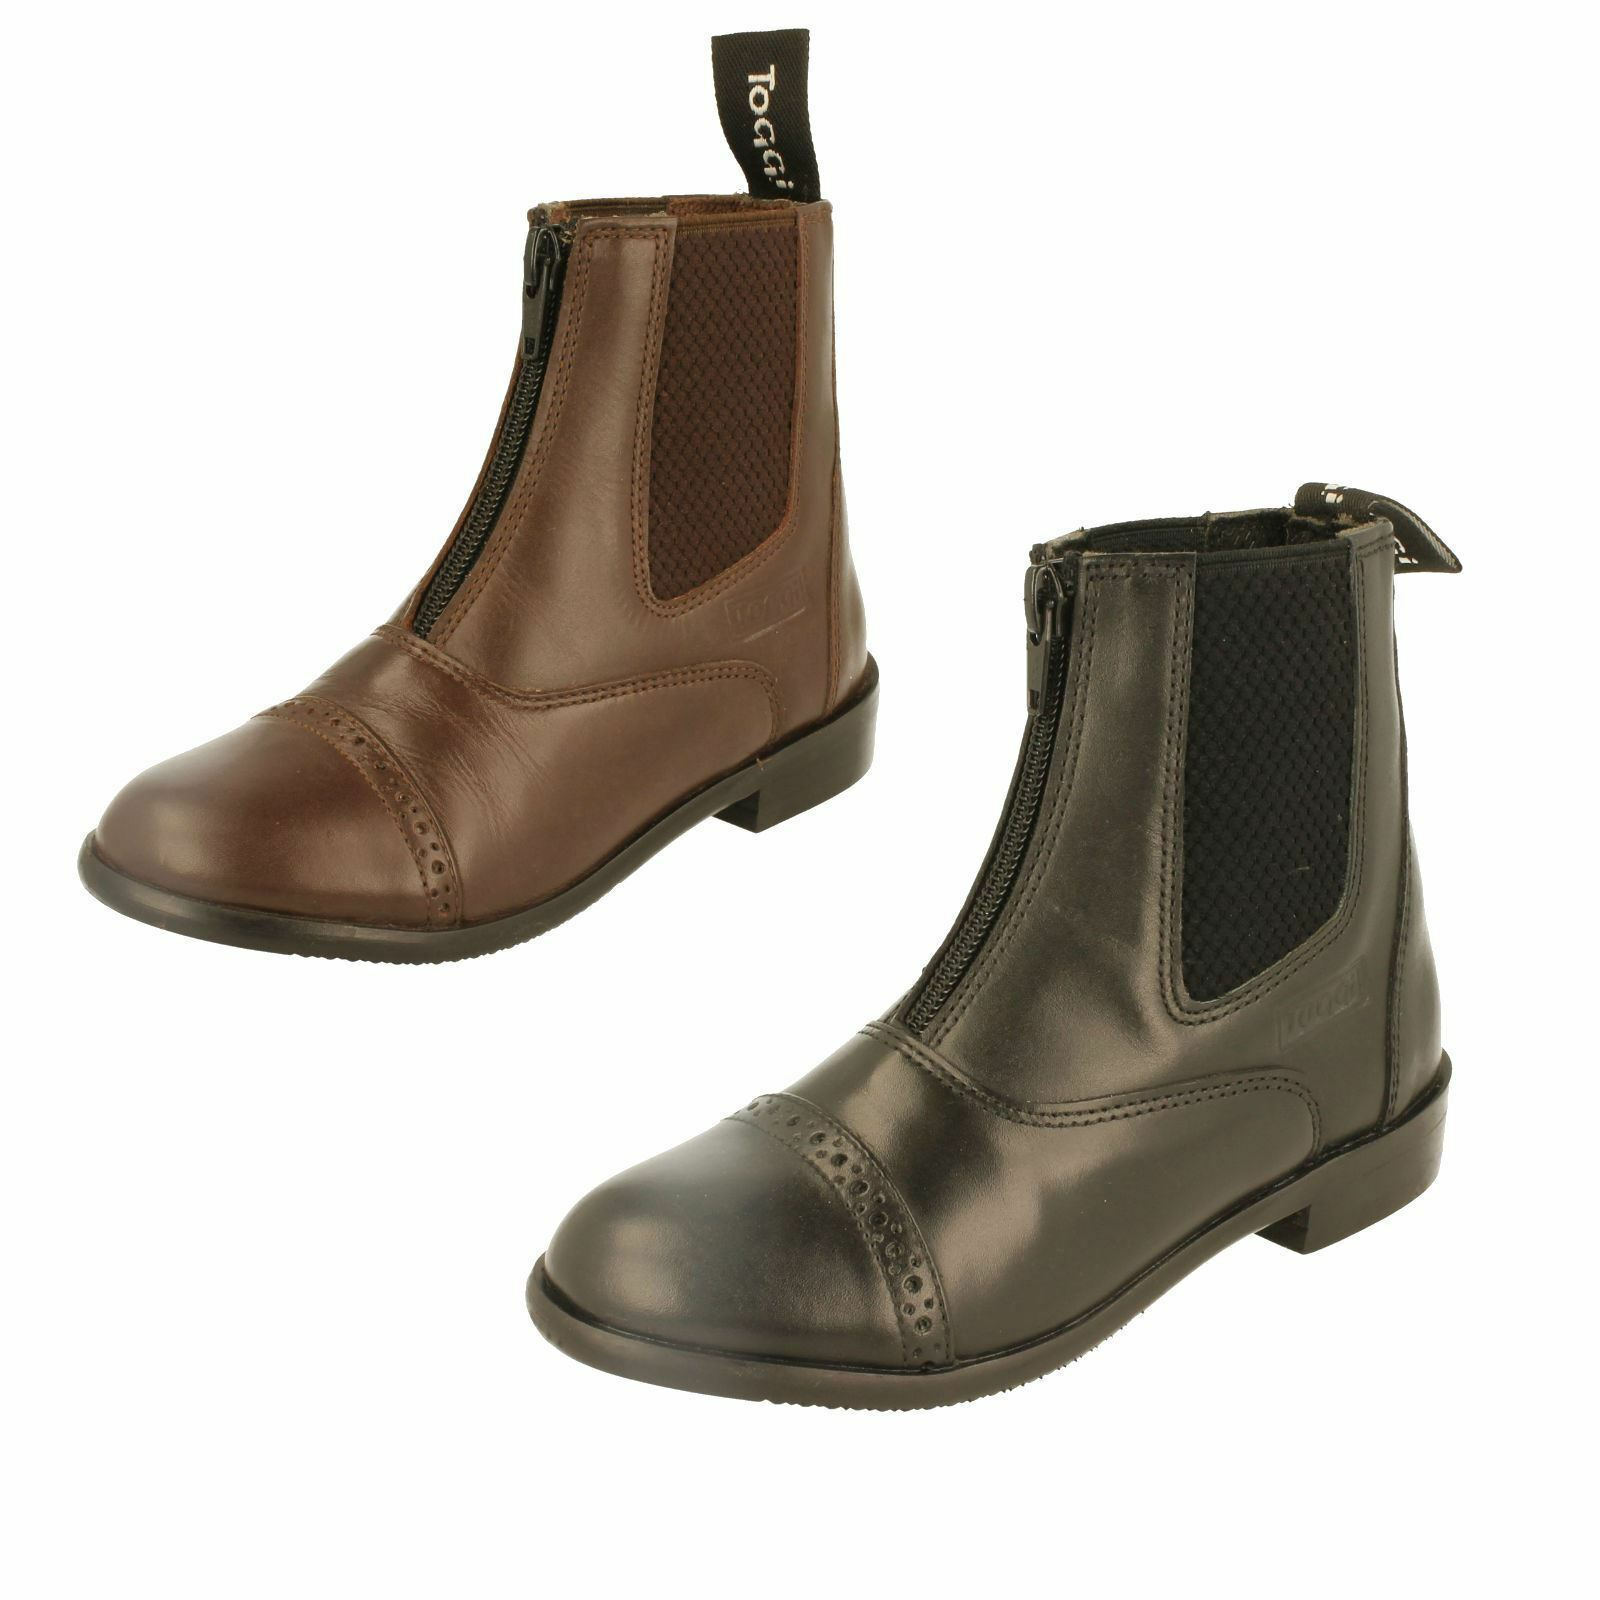 Childrens Toggi Leather Jodphur - botas - Jodphur Augusta 1b9bab